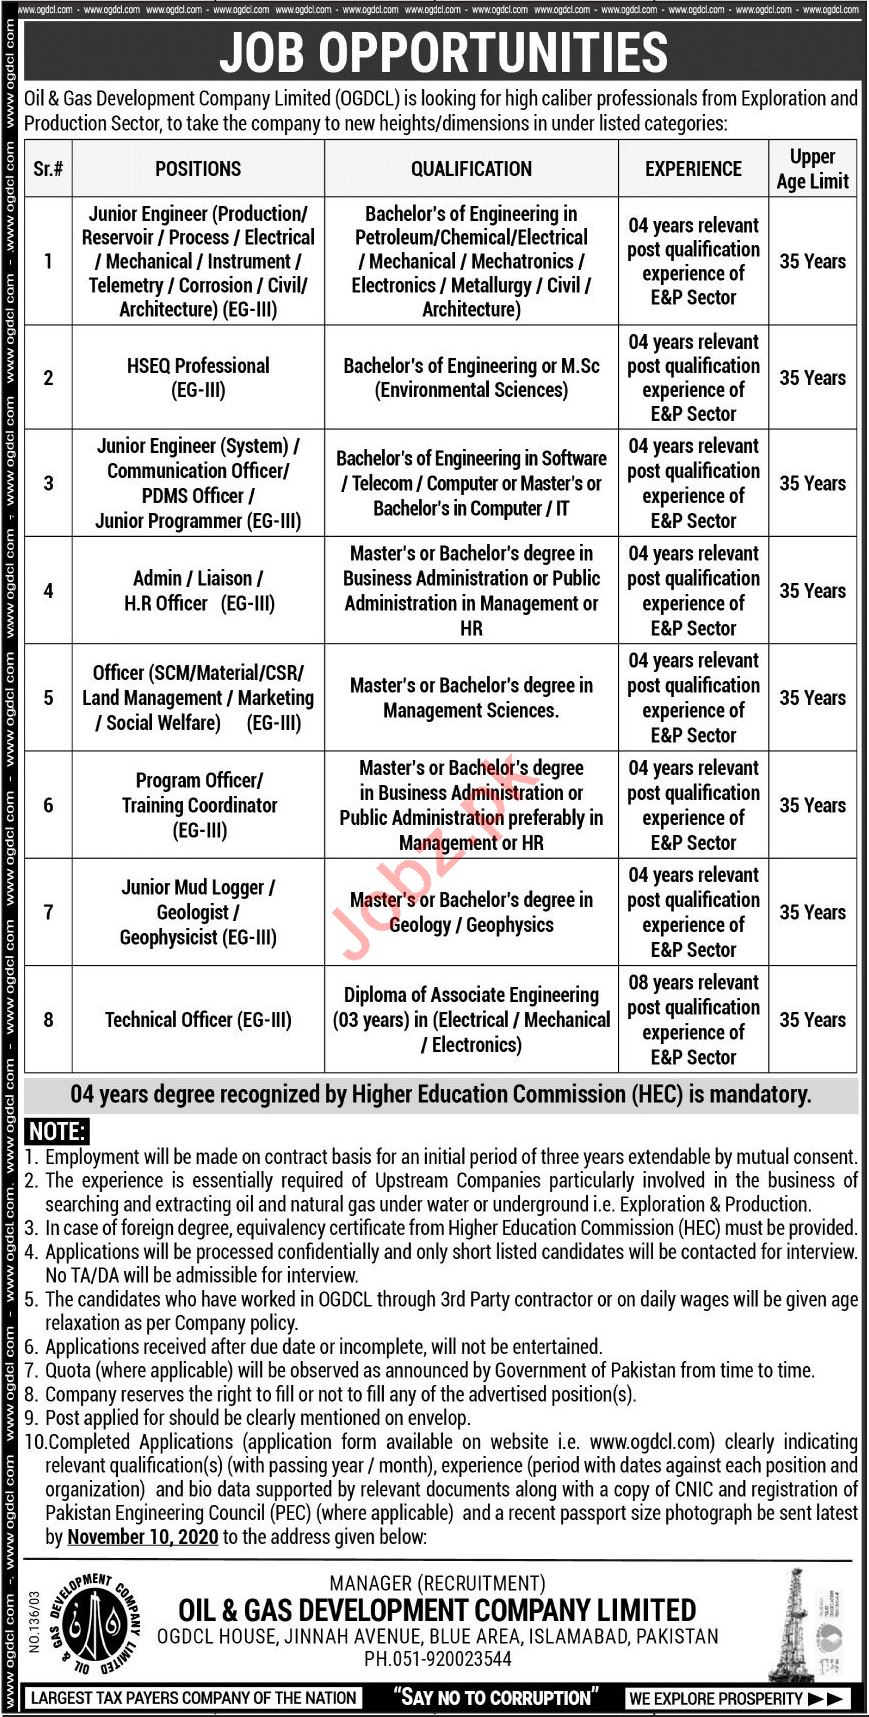 OGDCL Jobs 2020 for Junior Engineer & HSEQ Professional